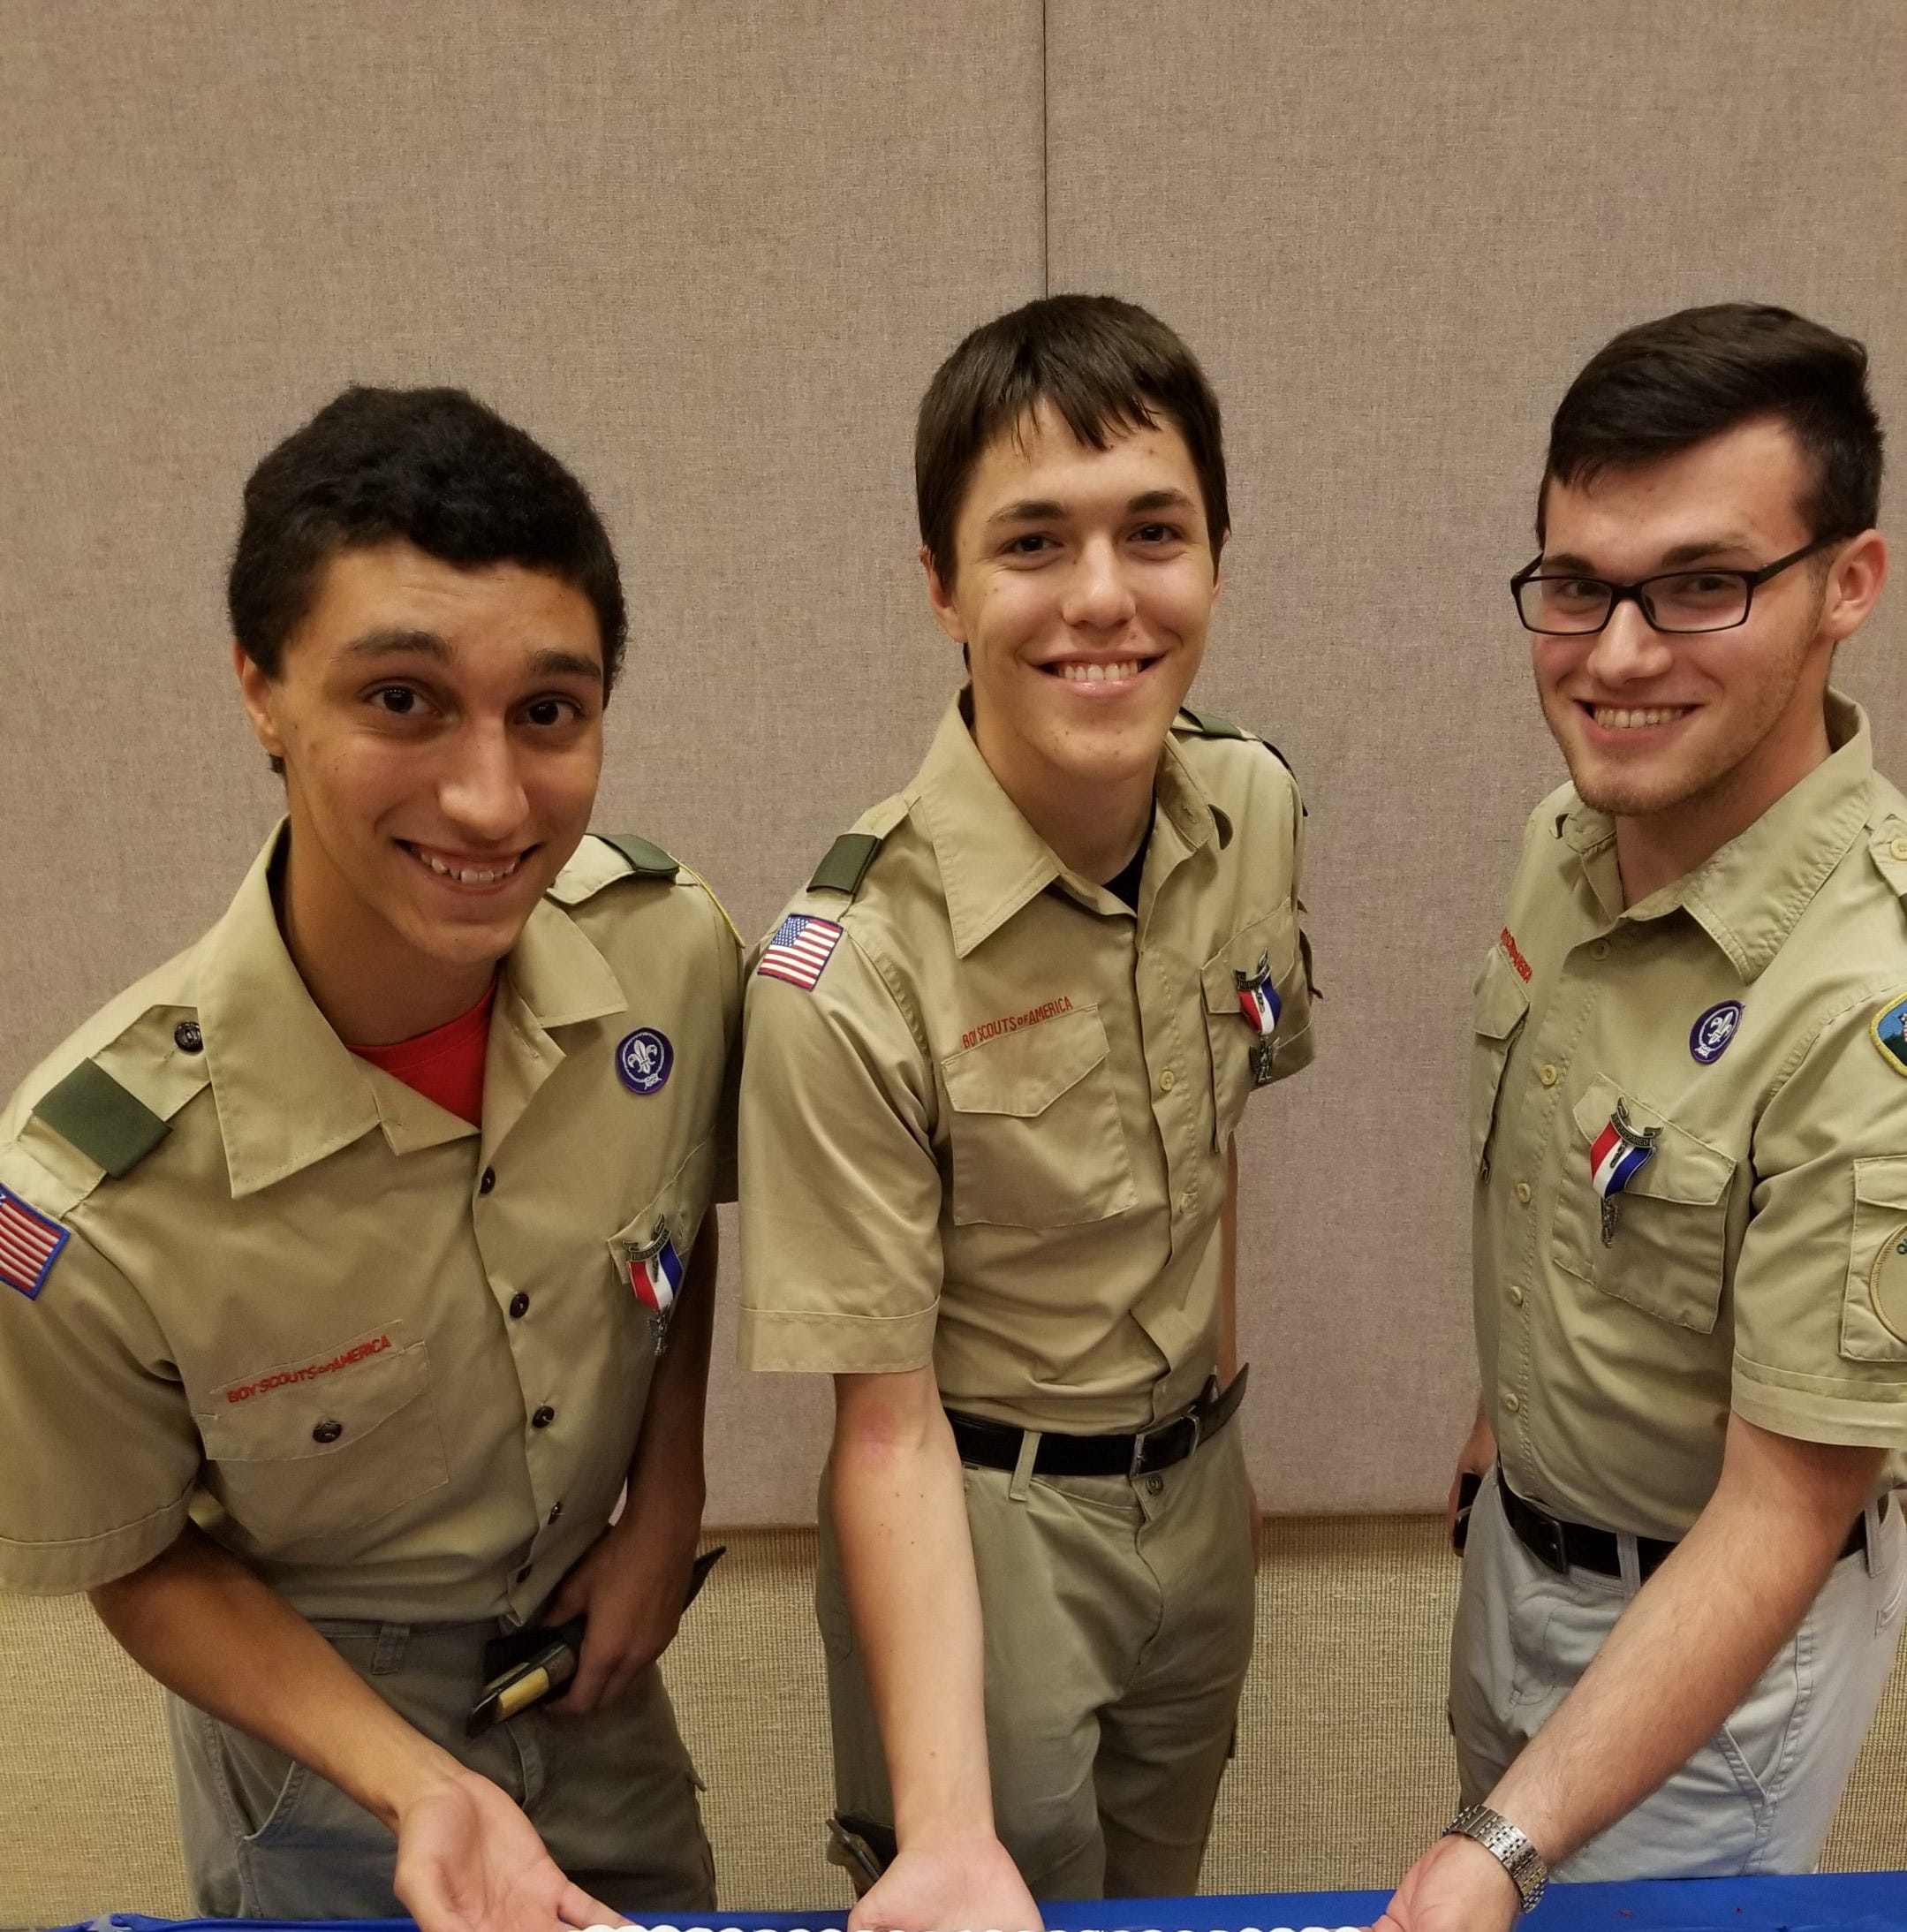 Friends and Neighbors: Three scouts from same troop achieve rank of Eagle Scout